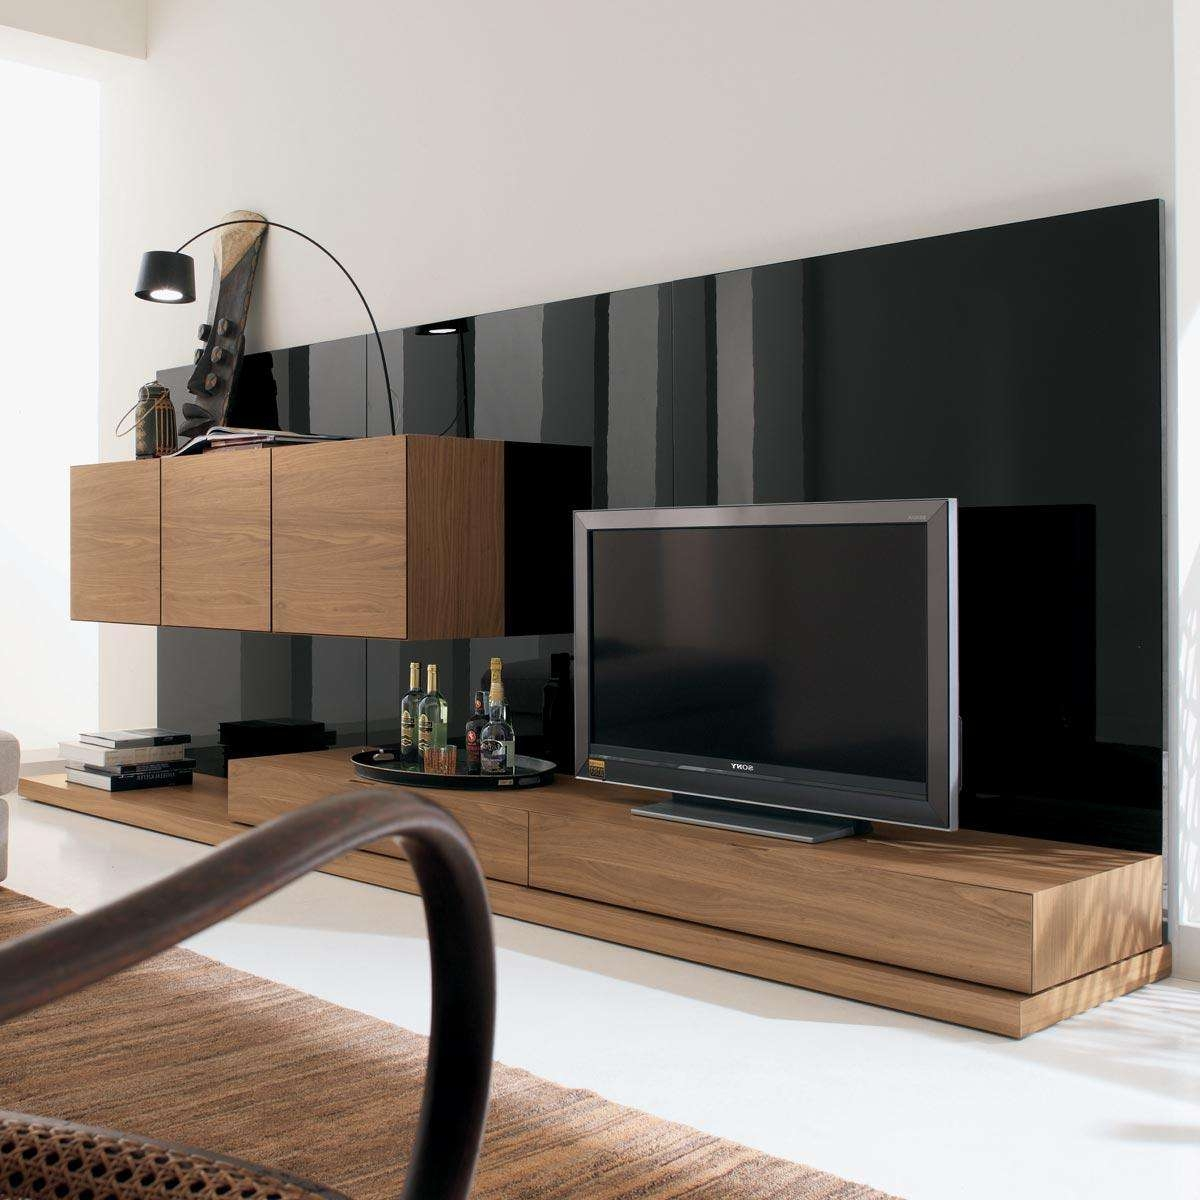 Modern Nature Wood Big Screen Tv Stand Wall Mounted Living Room Inside Solid Wood Black Tv Stands (View 10 of 15)